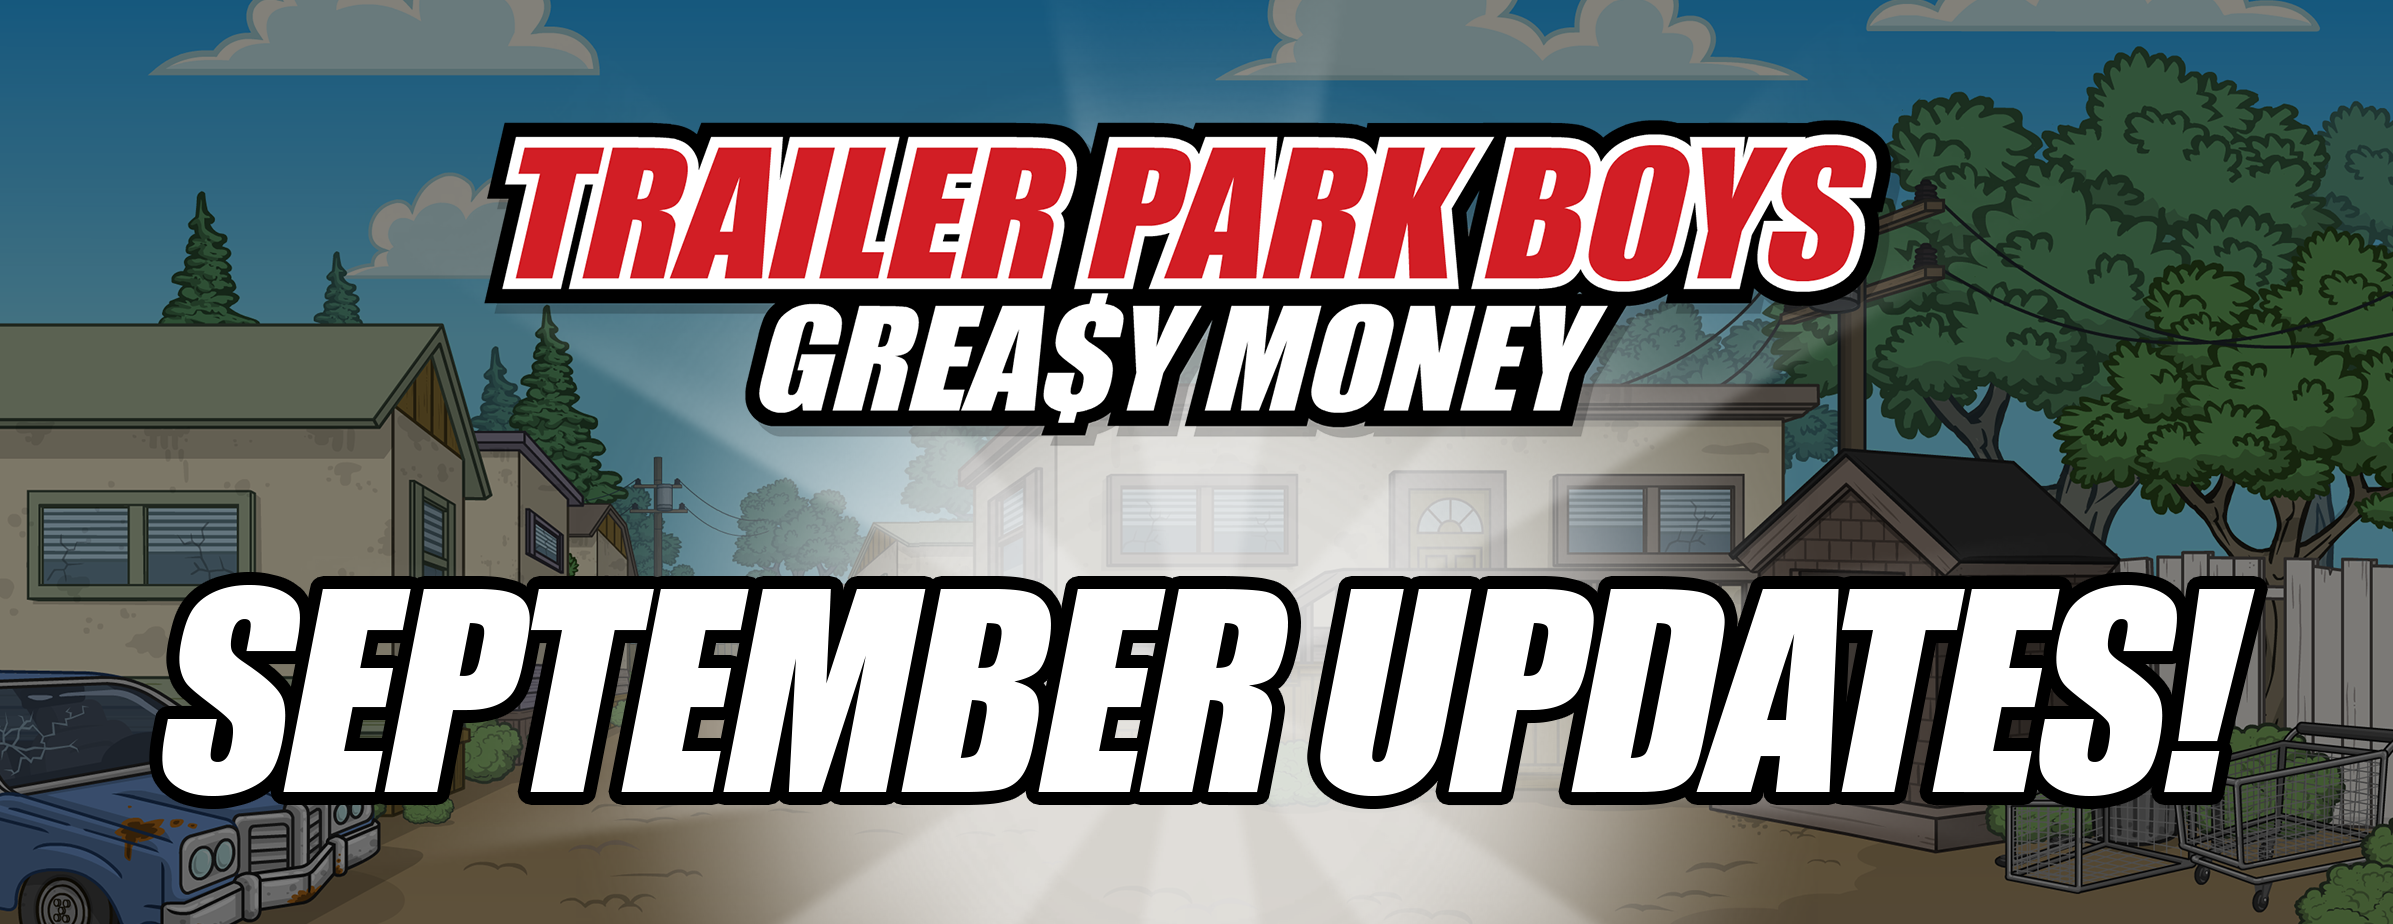 Trailer Park Boys: September Events!